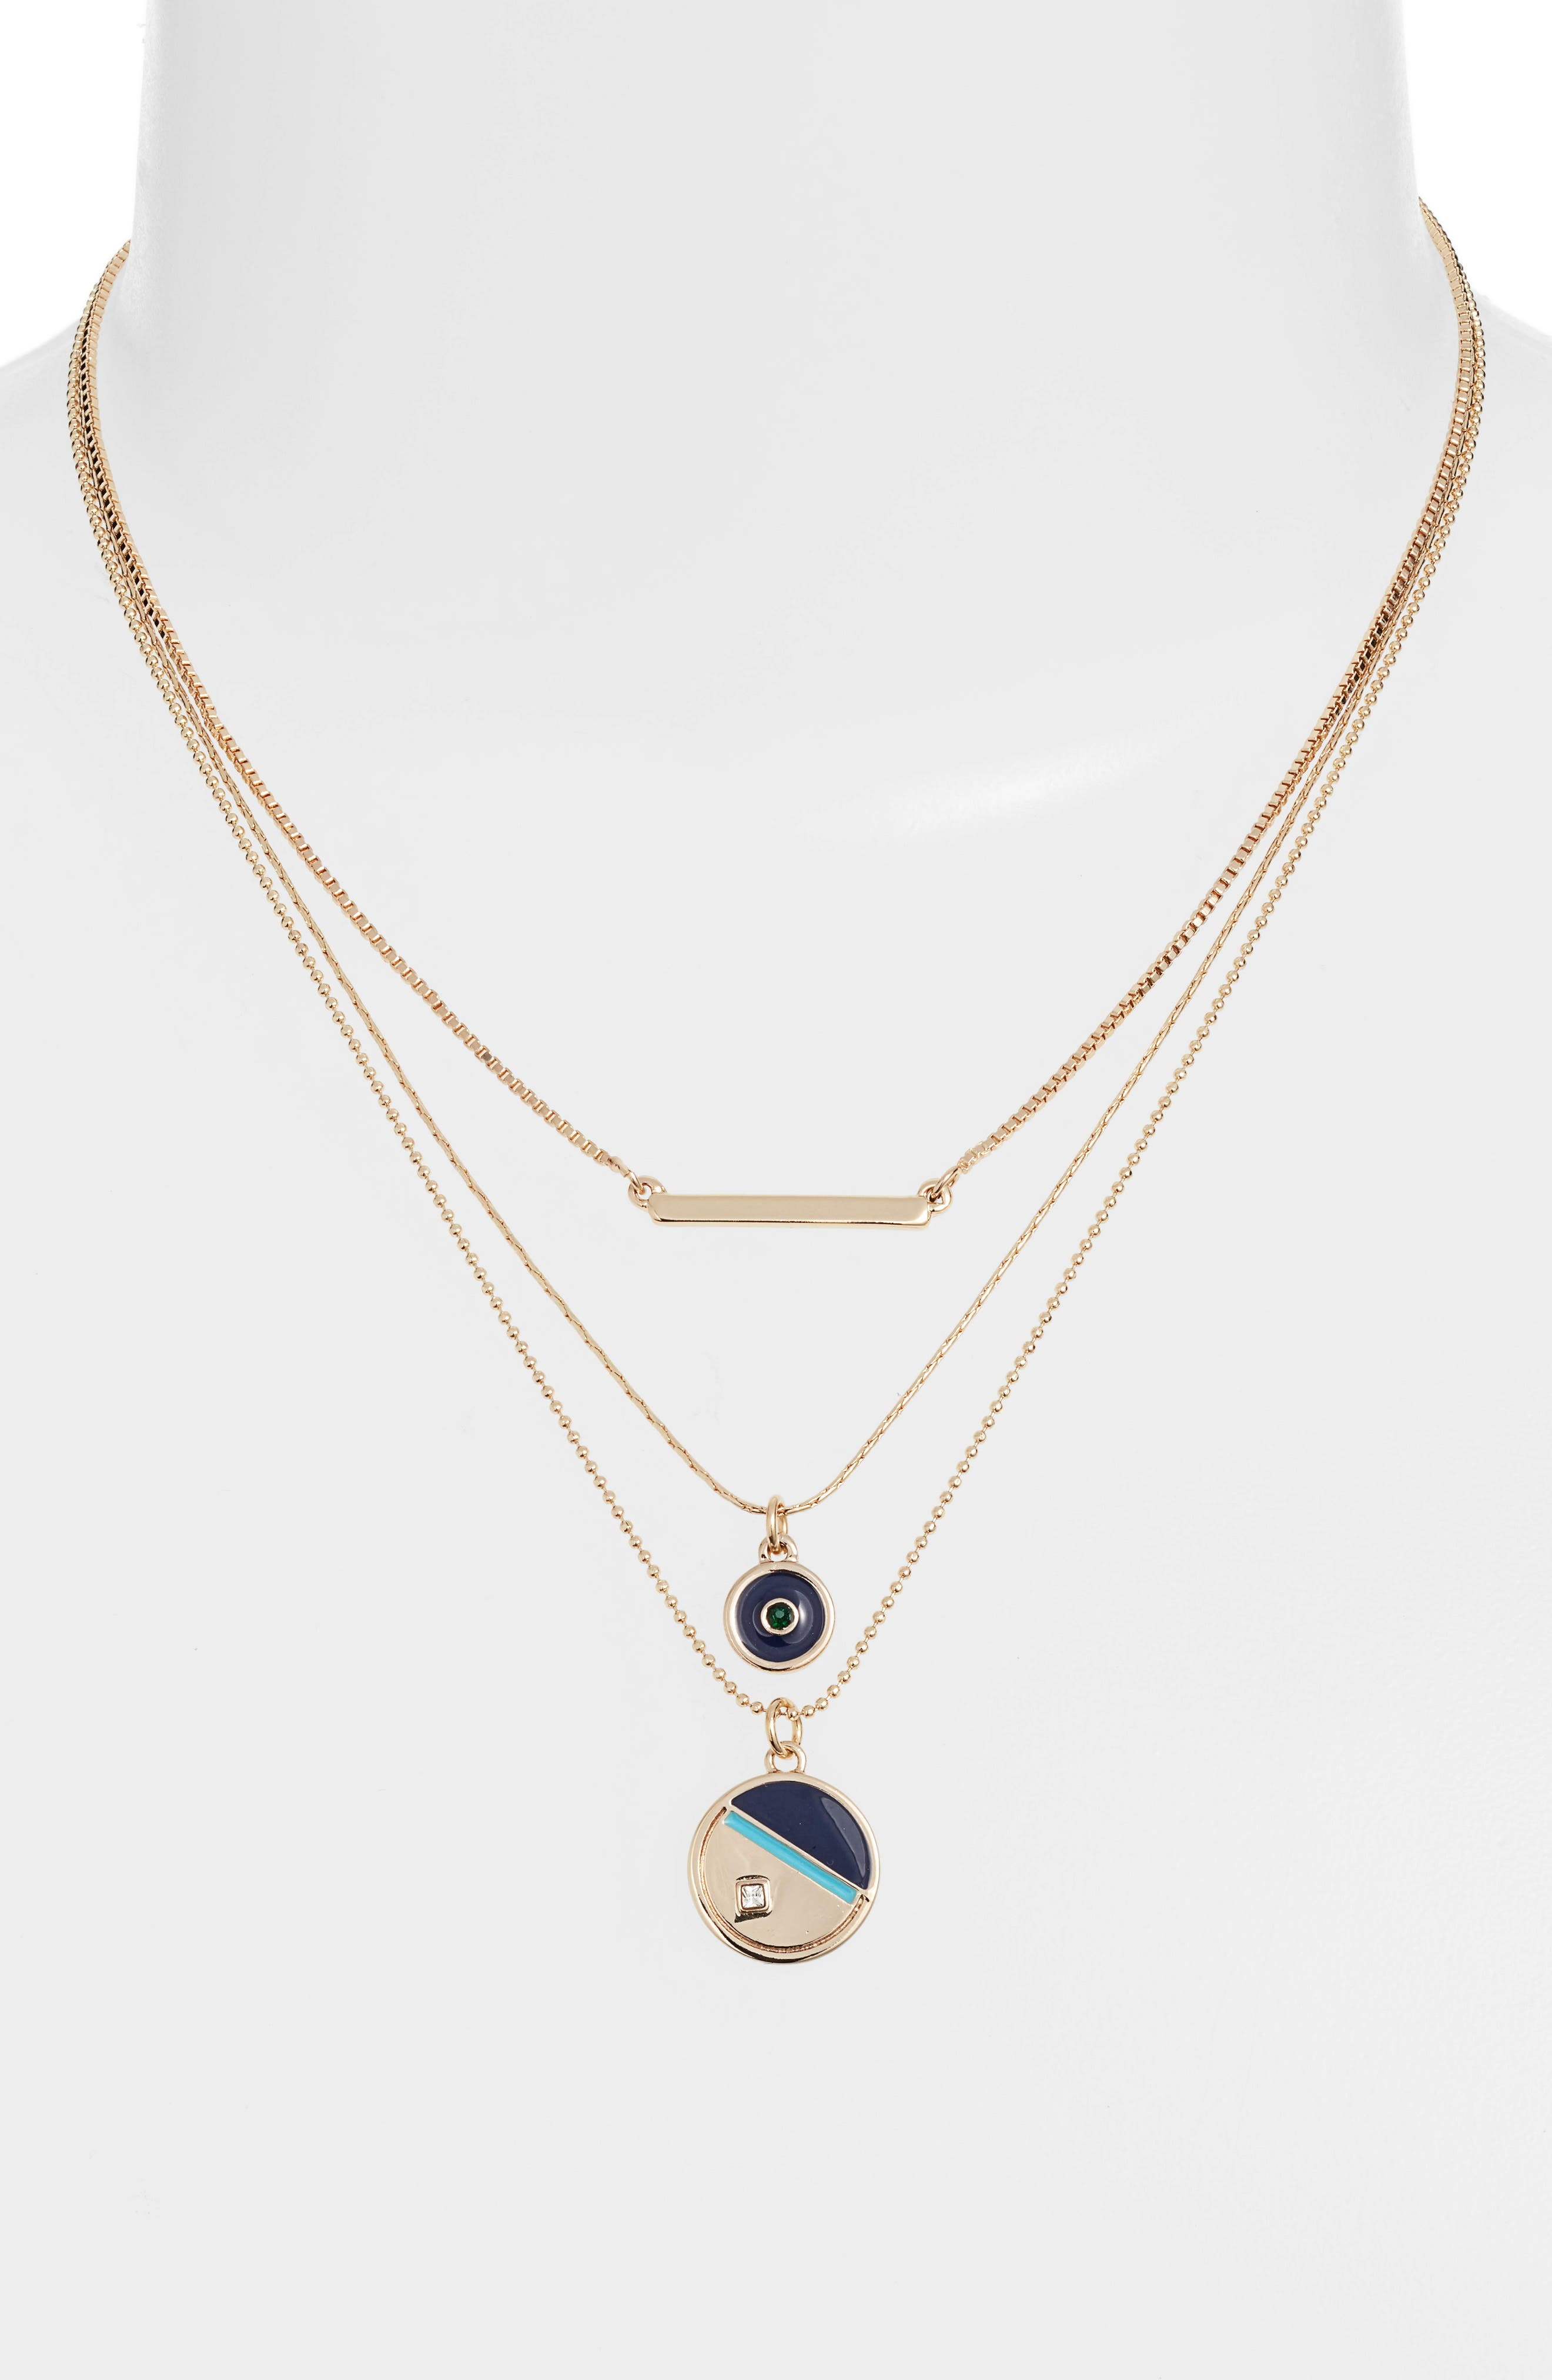 3-Tier Disc Necklace,                             Alternate thumbnail 2, color,                             TURQUOISE- NAVY- GOLD